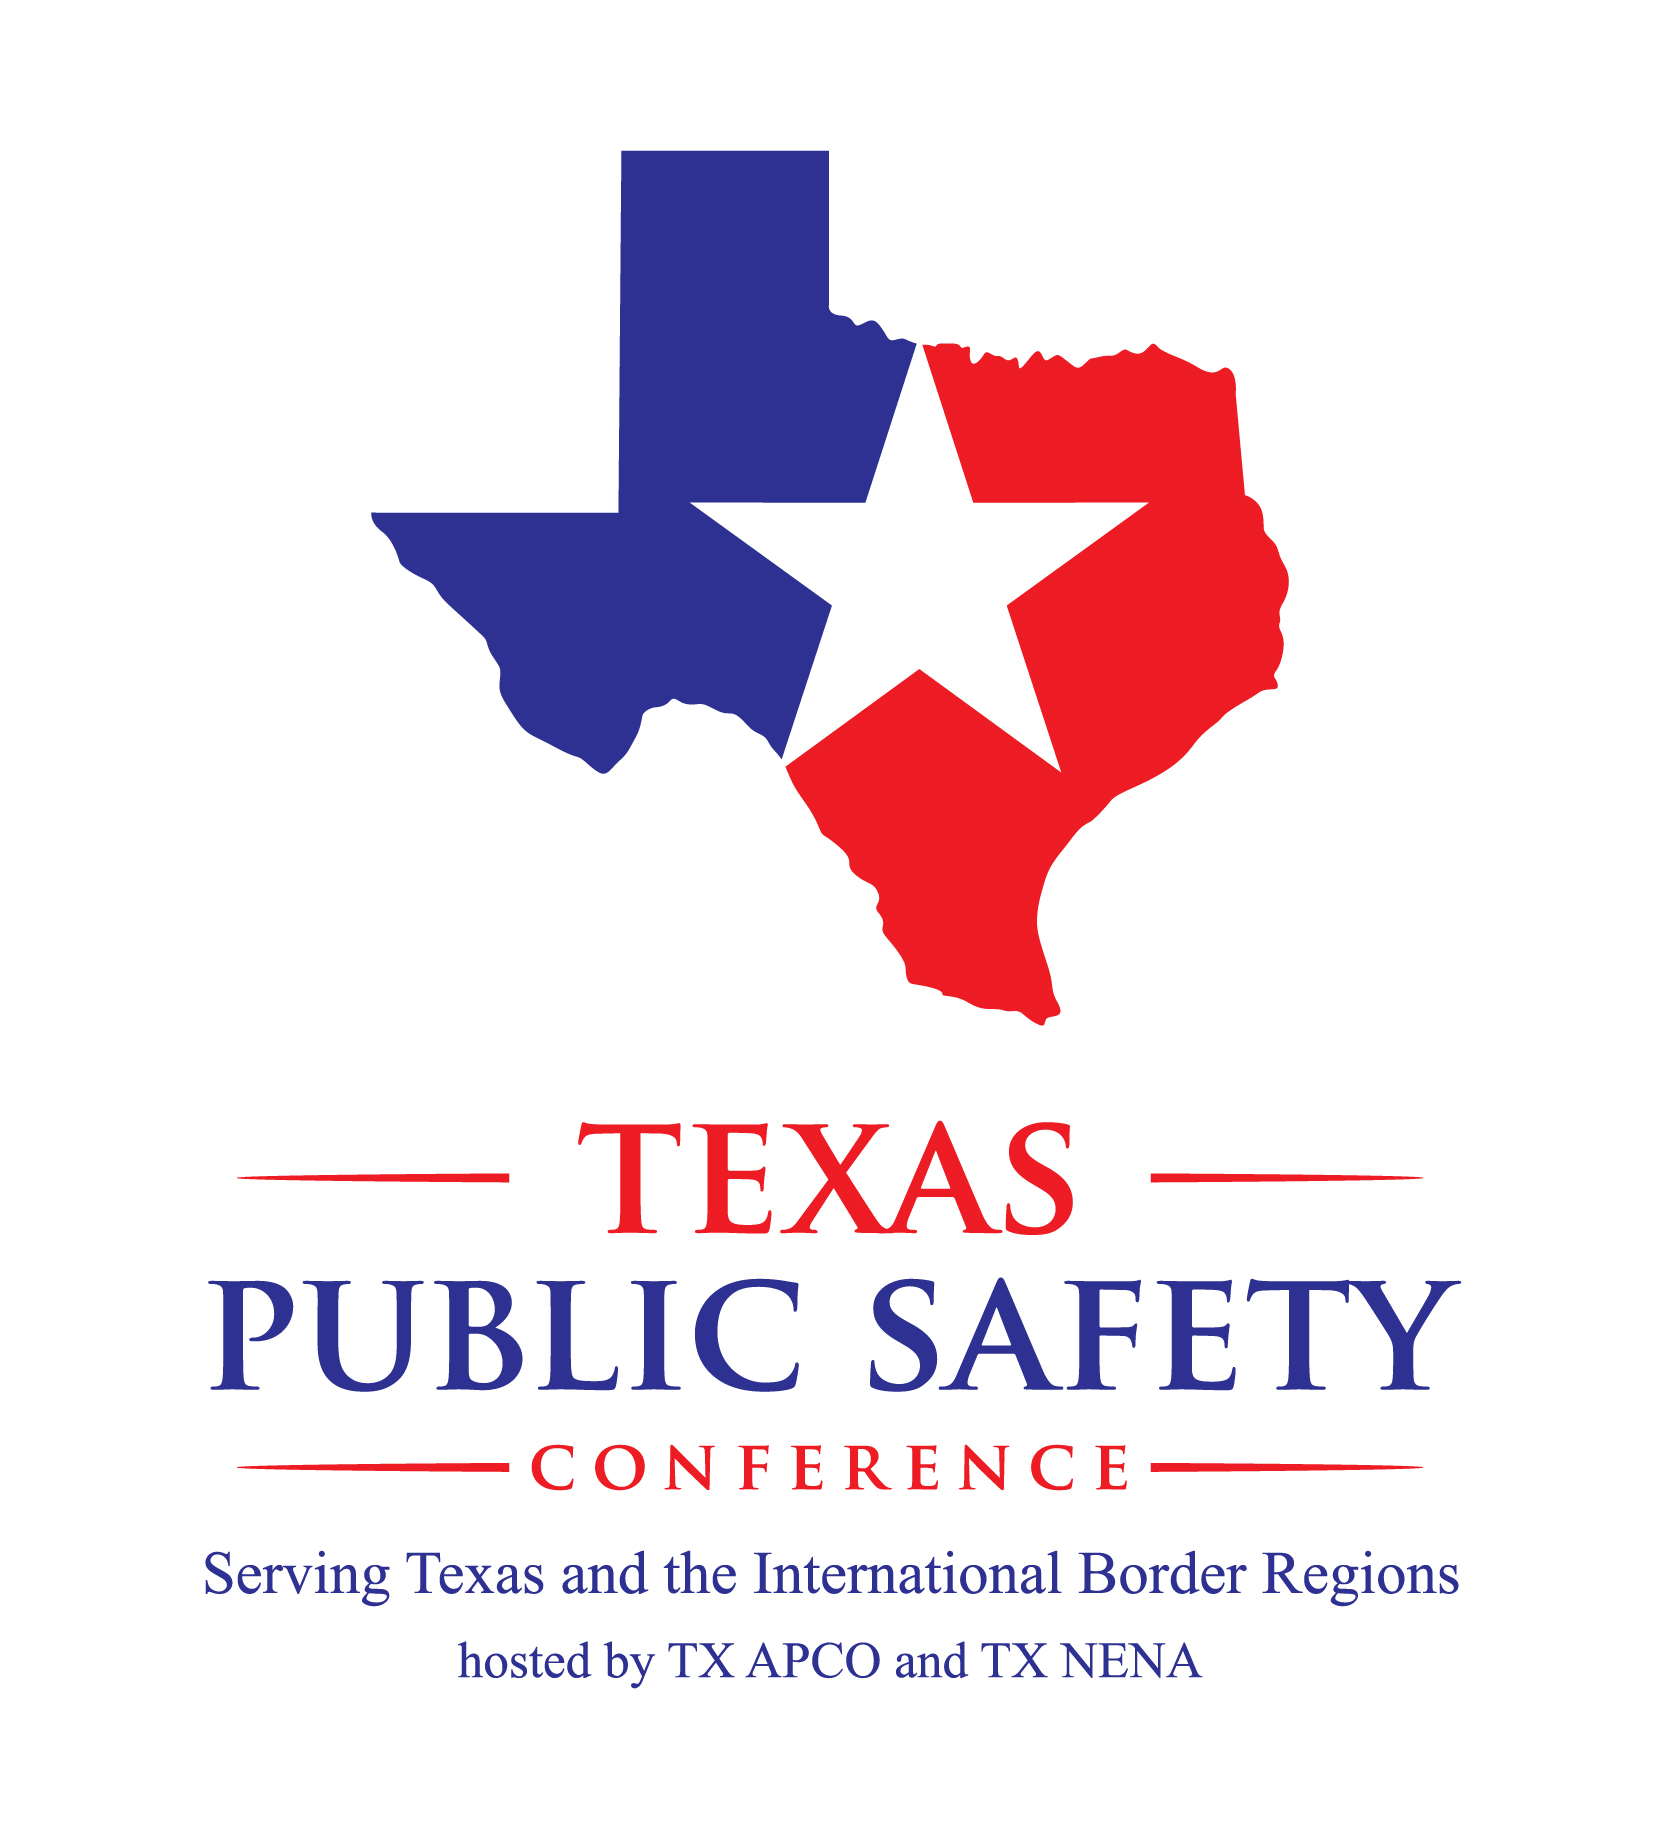 Texas Public Safety Conference Serving Texas